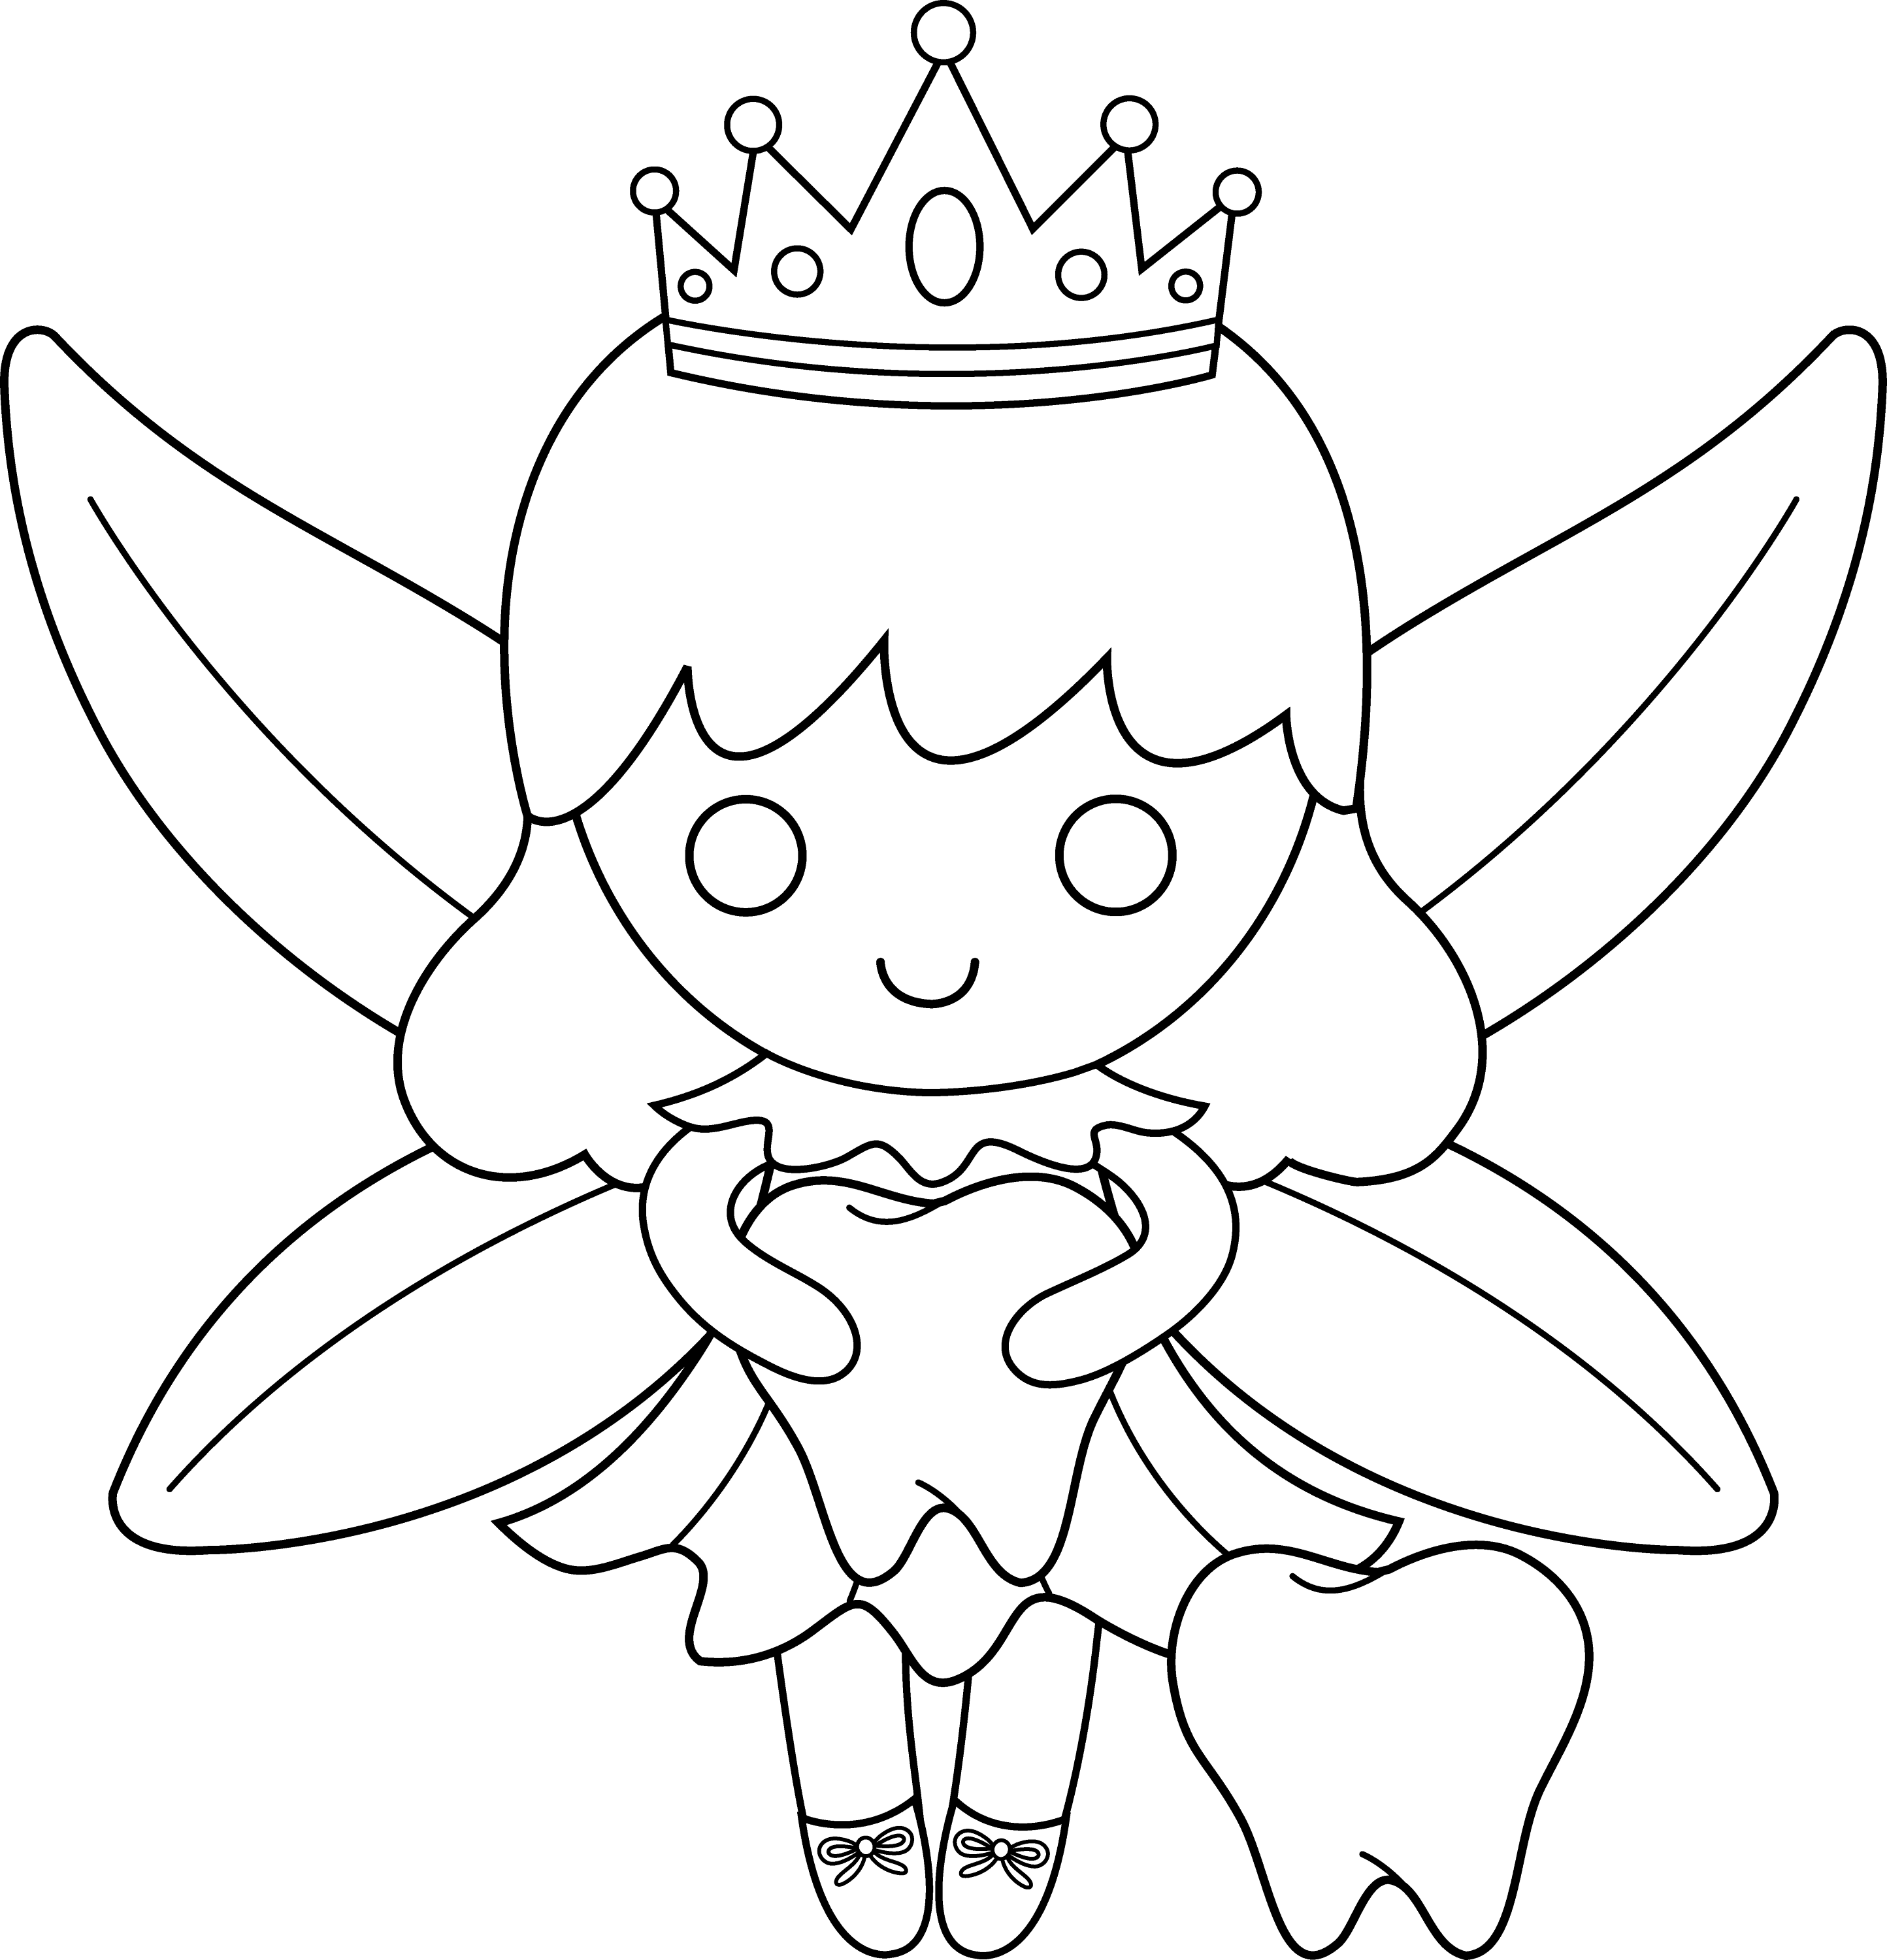 fairy grayscale coloring pages pin by meghan durant on wall art grayscale coloring grayscale pages fairy coloring